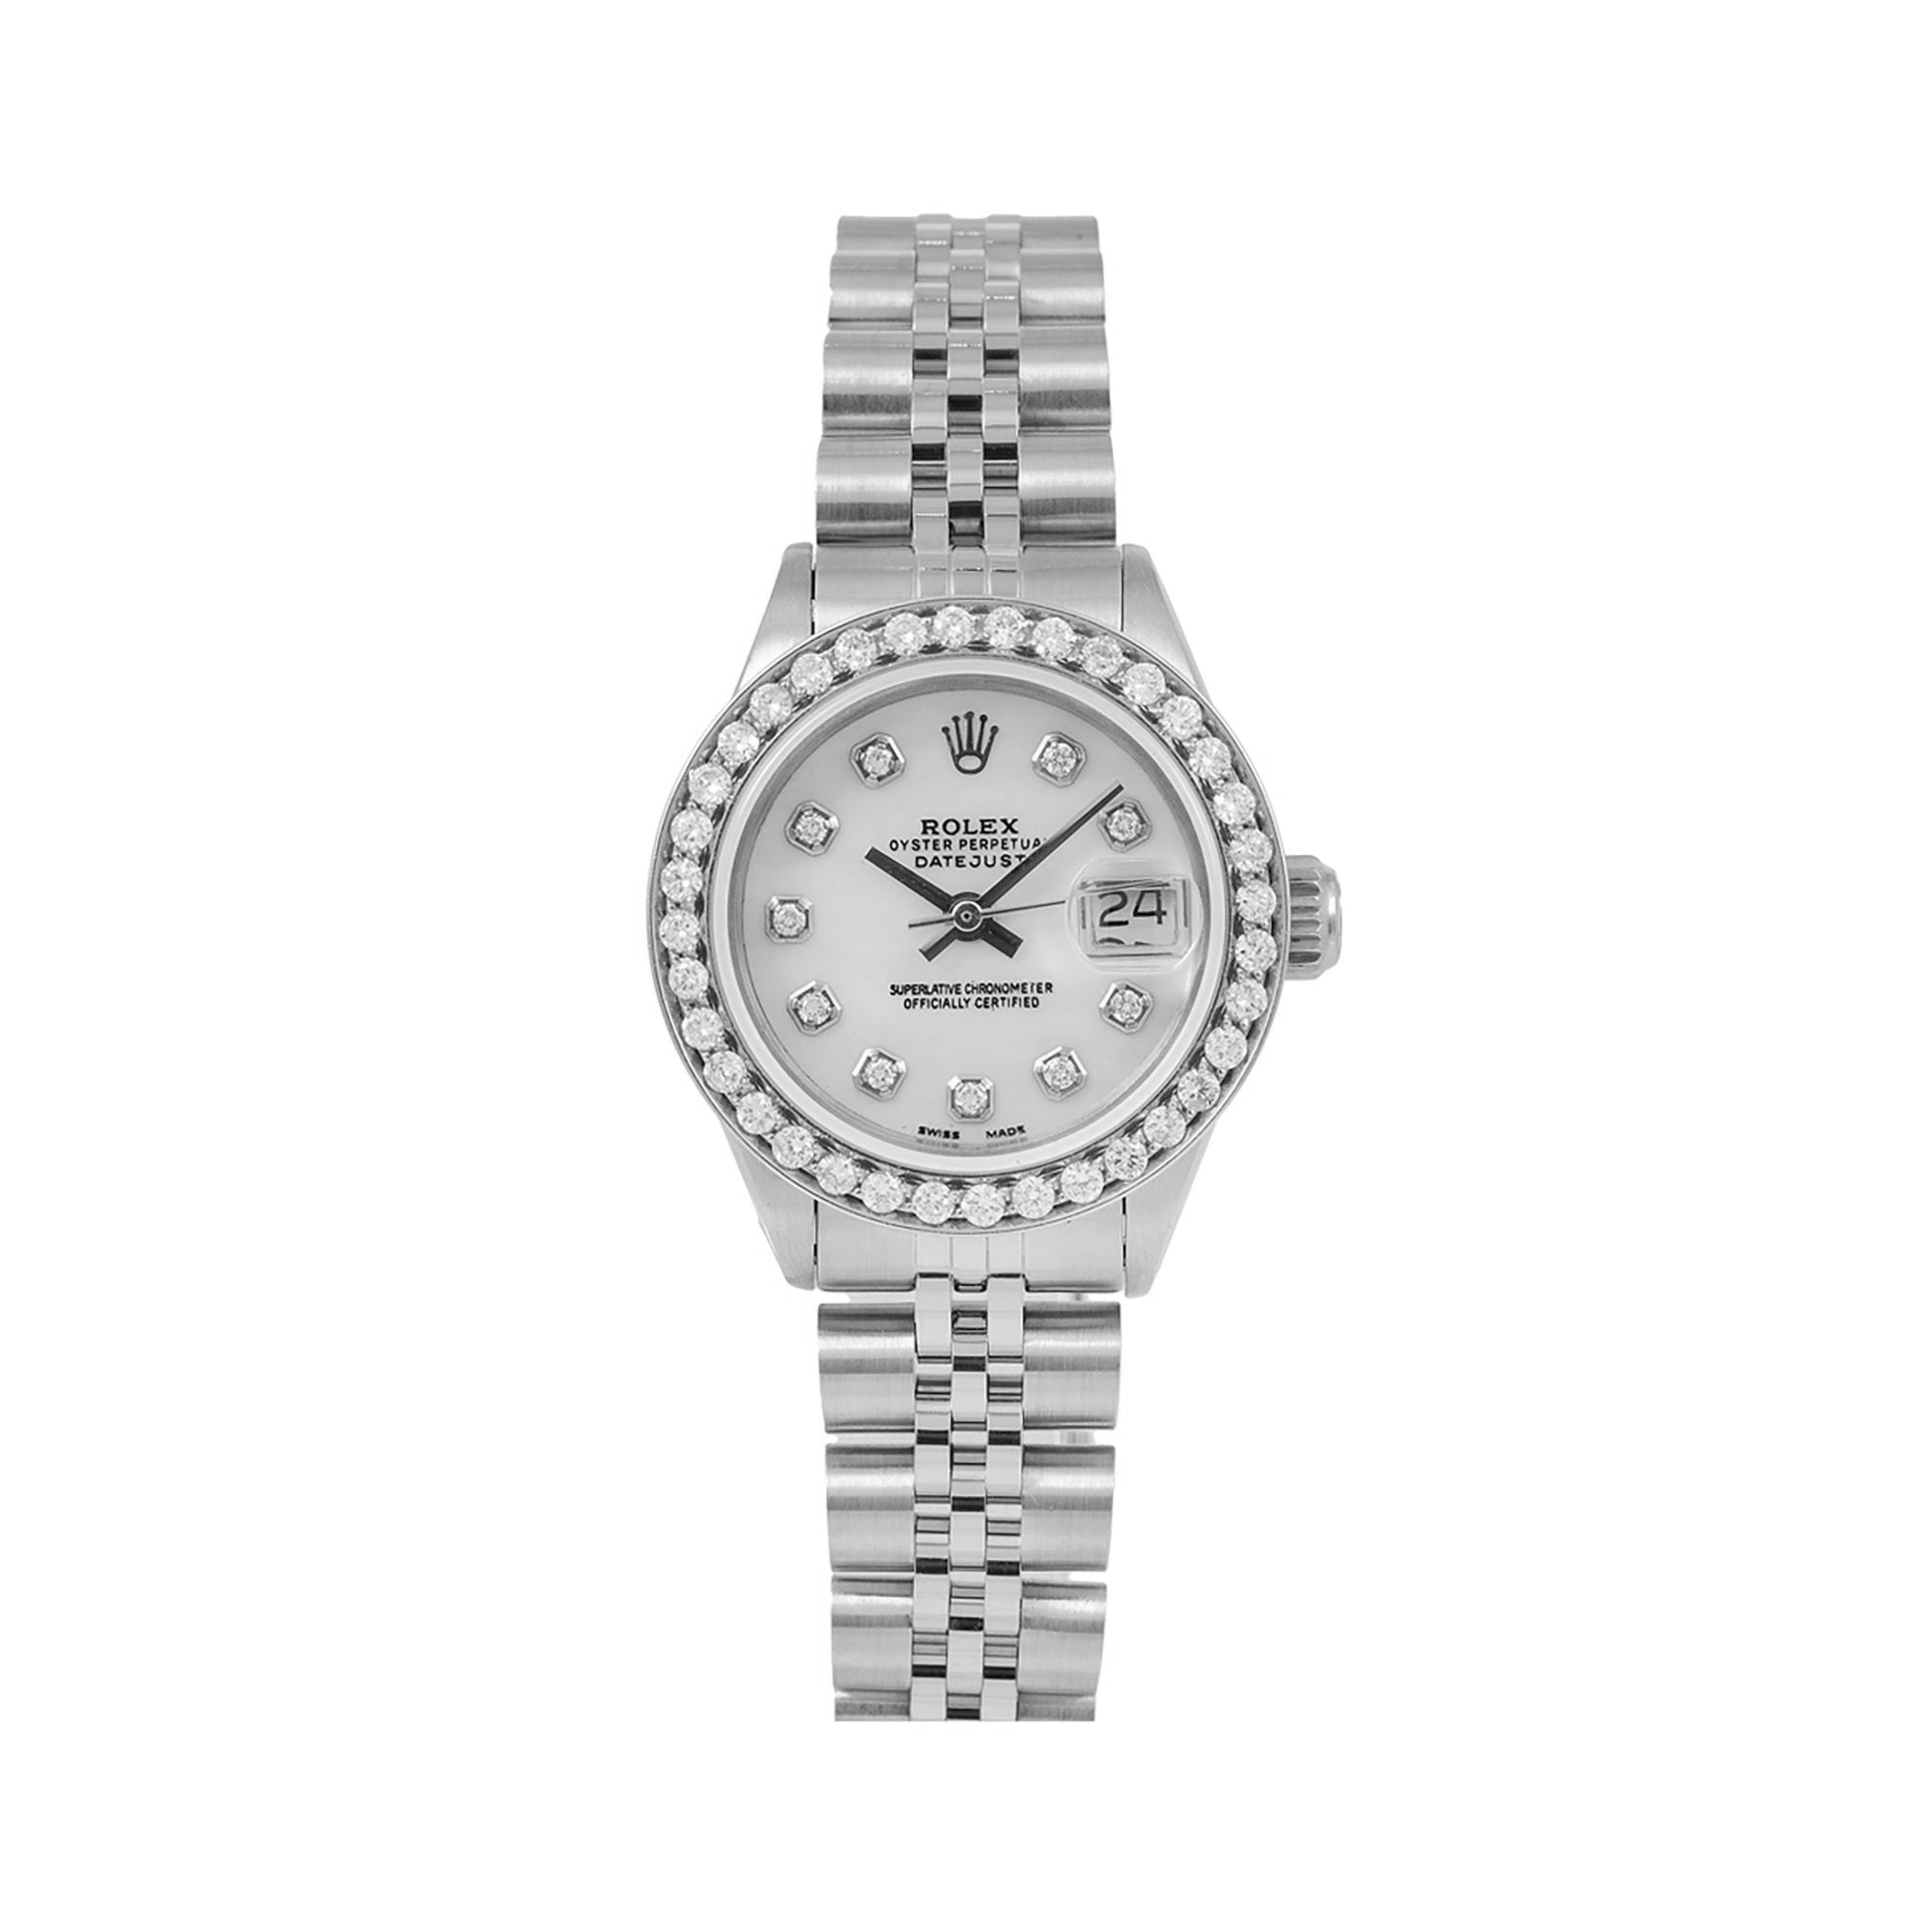 Rolex DateJust Diamond Watch, 6924 26mm, Silver Diamond Dial With 0.90 CT Diamonds